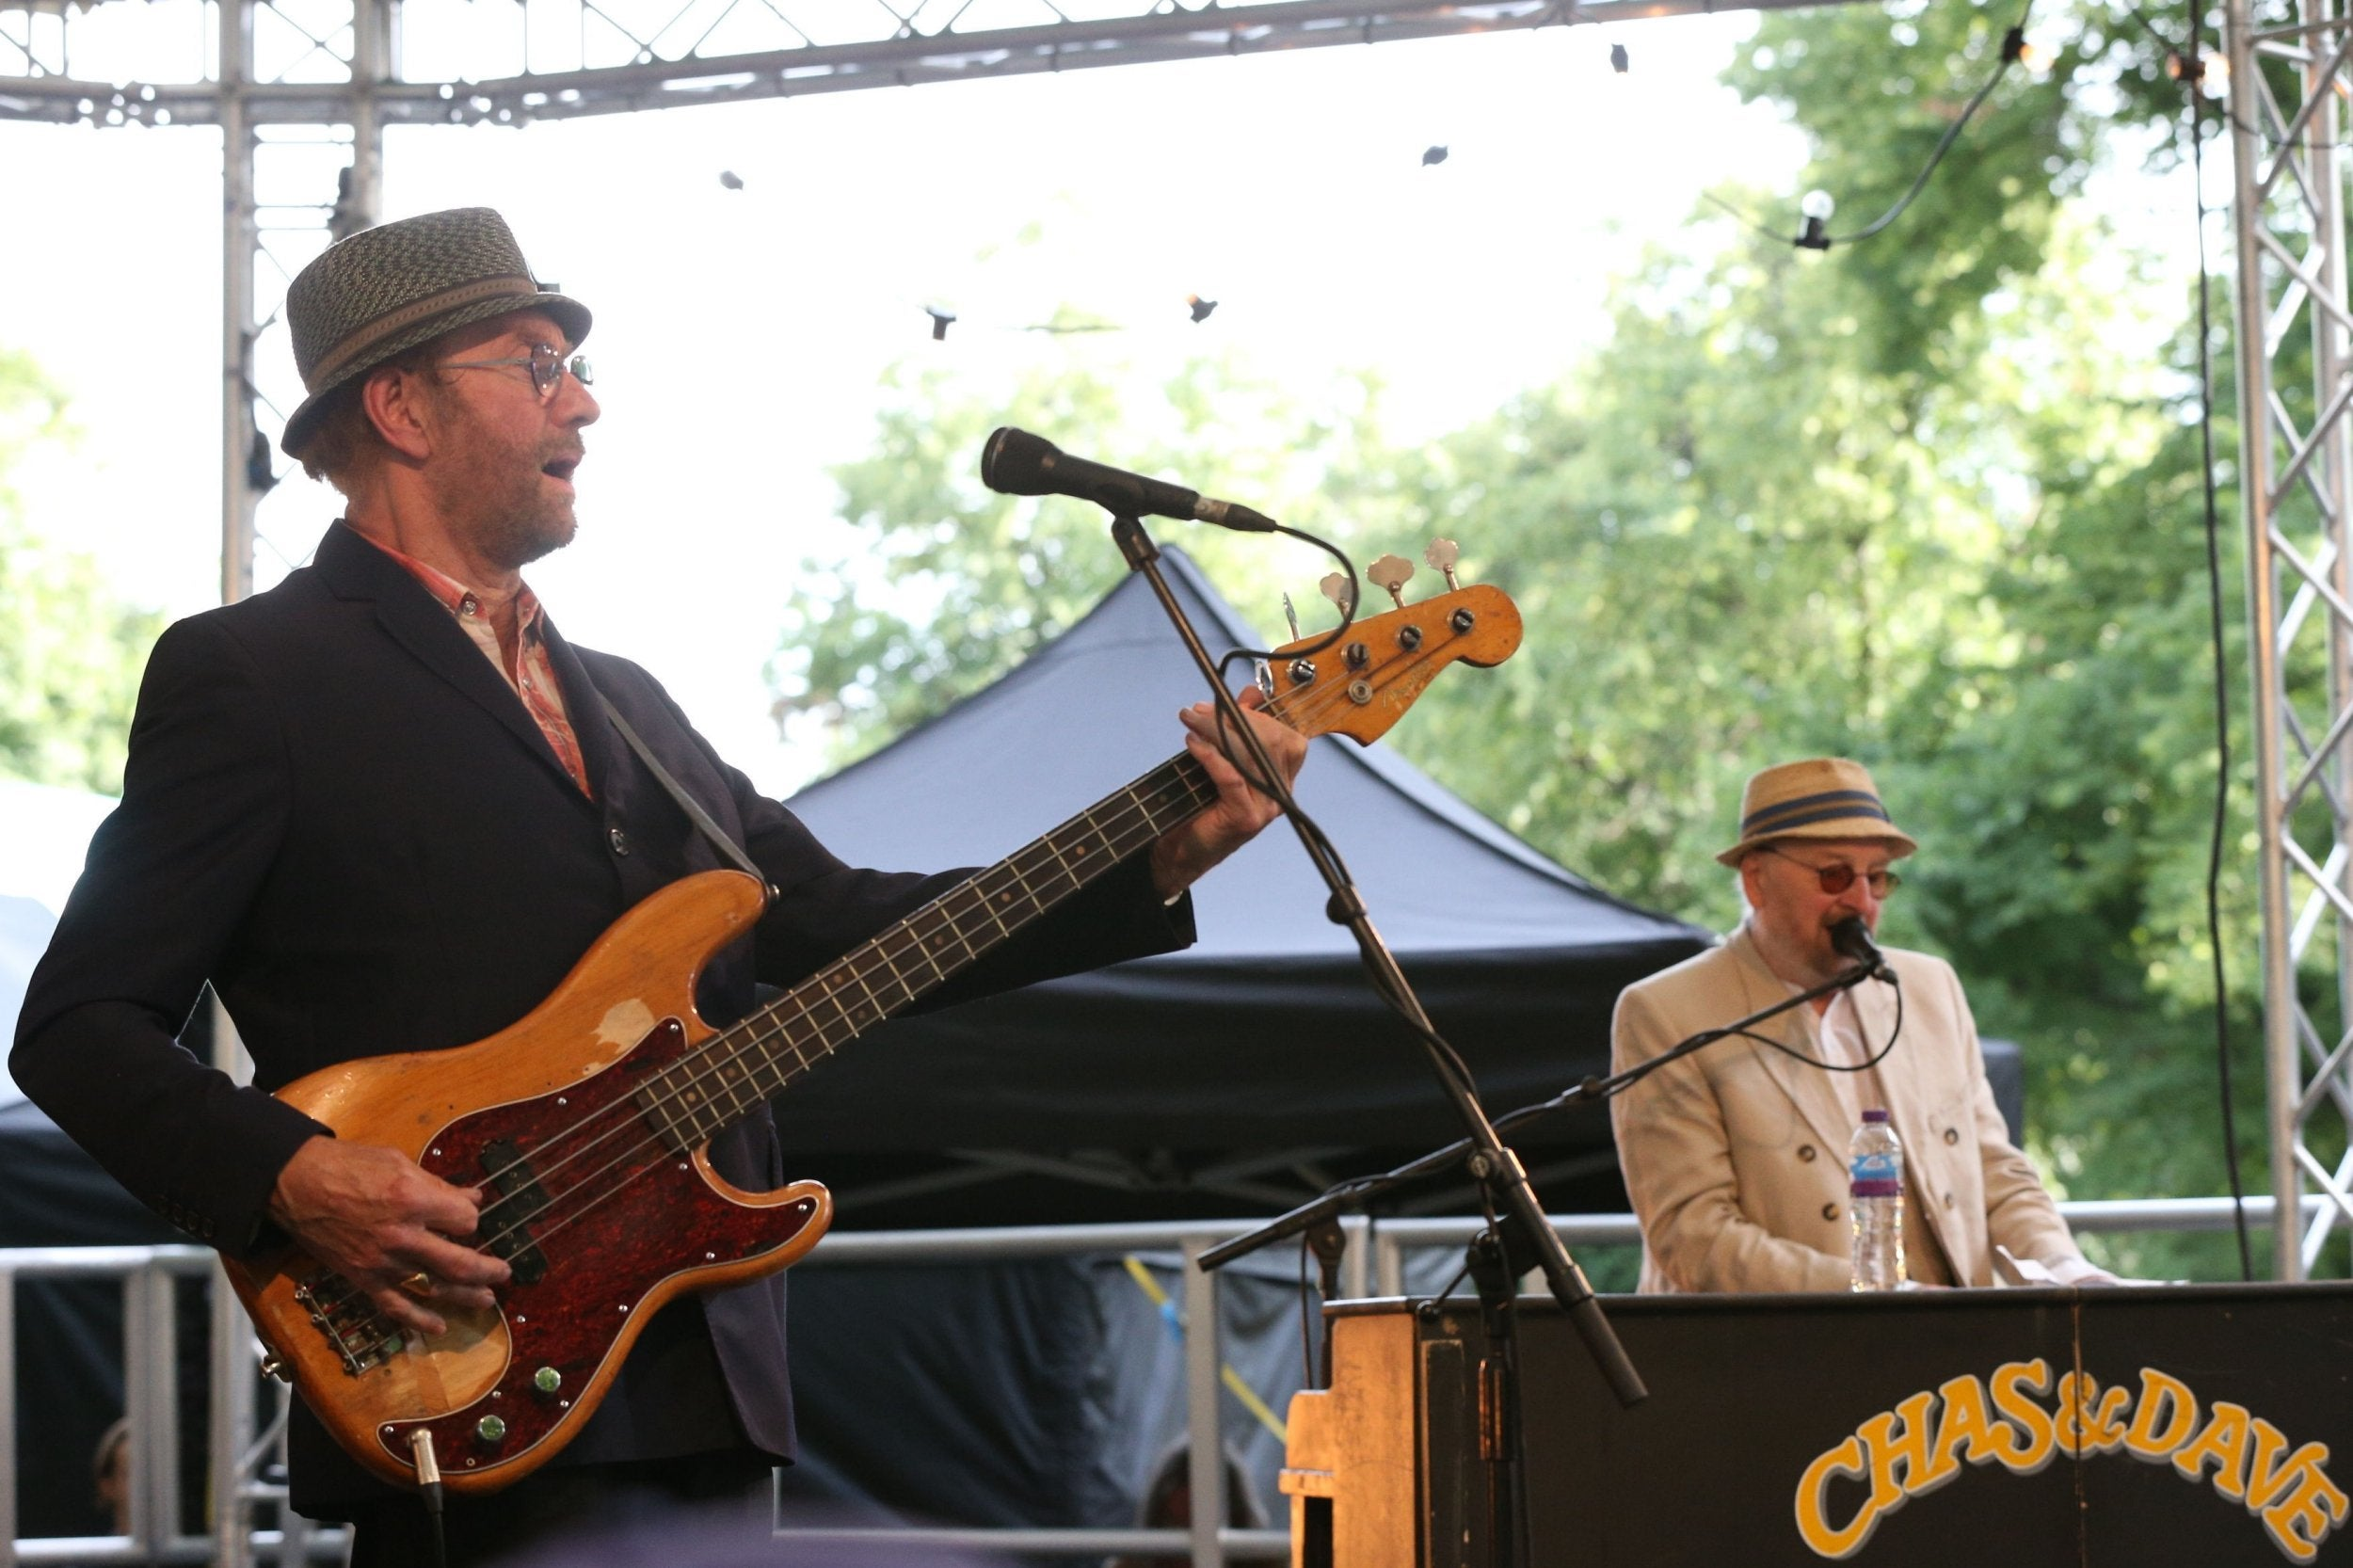 Image result for Chas Hodges - One Half of the Musical Duo Chas and Dave - Dies at 74 from Organ Failure